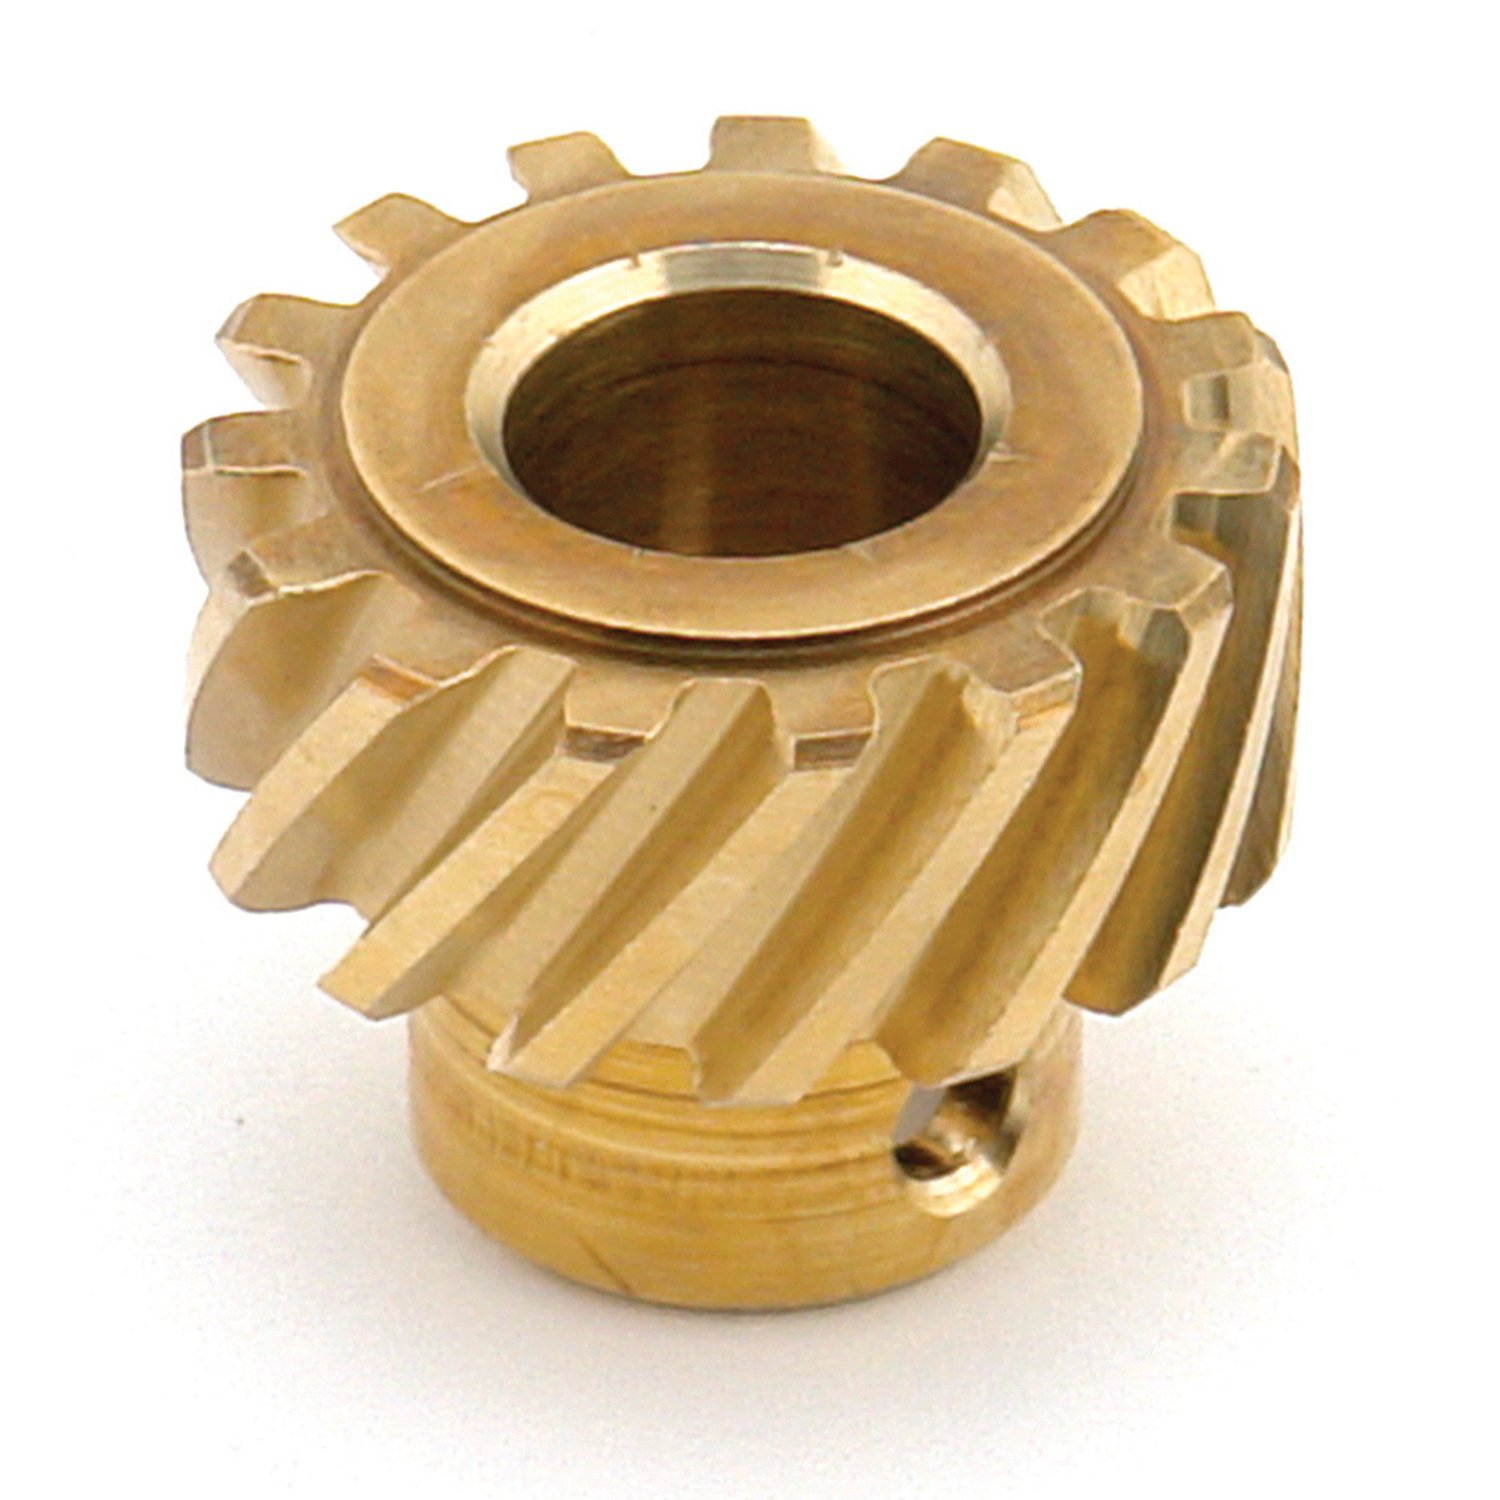 29432 - Mallory Gear, Bronze, Replaces 28714B Image